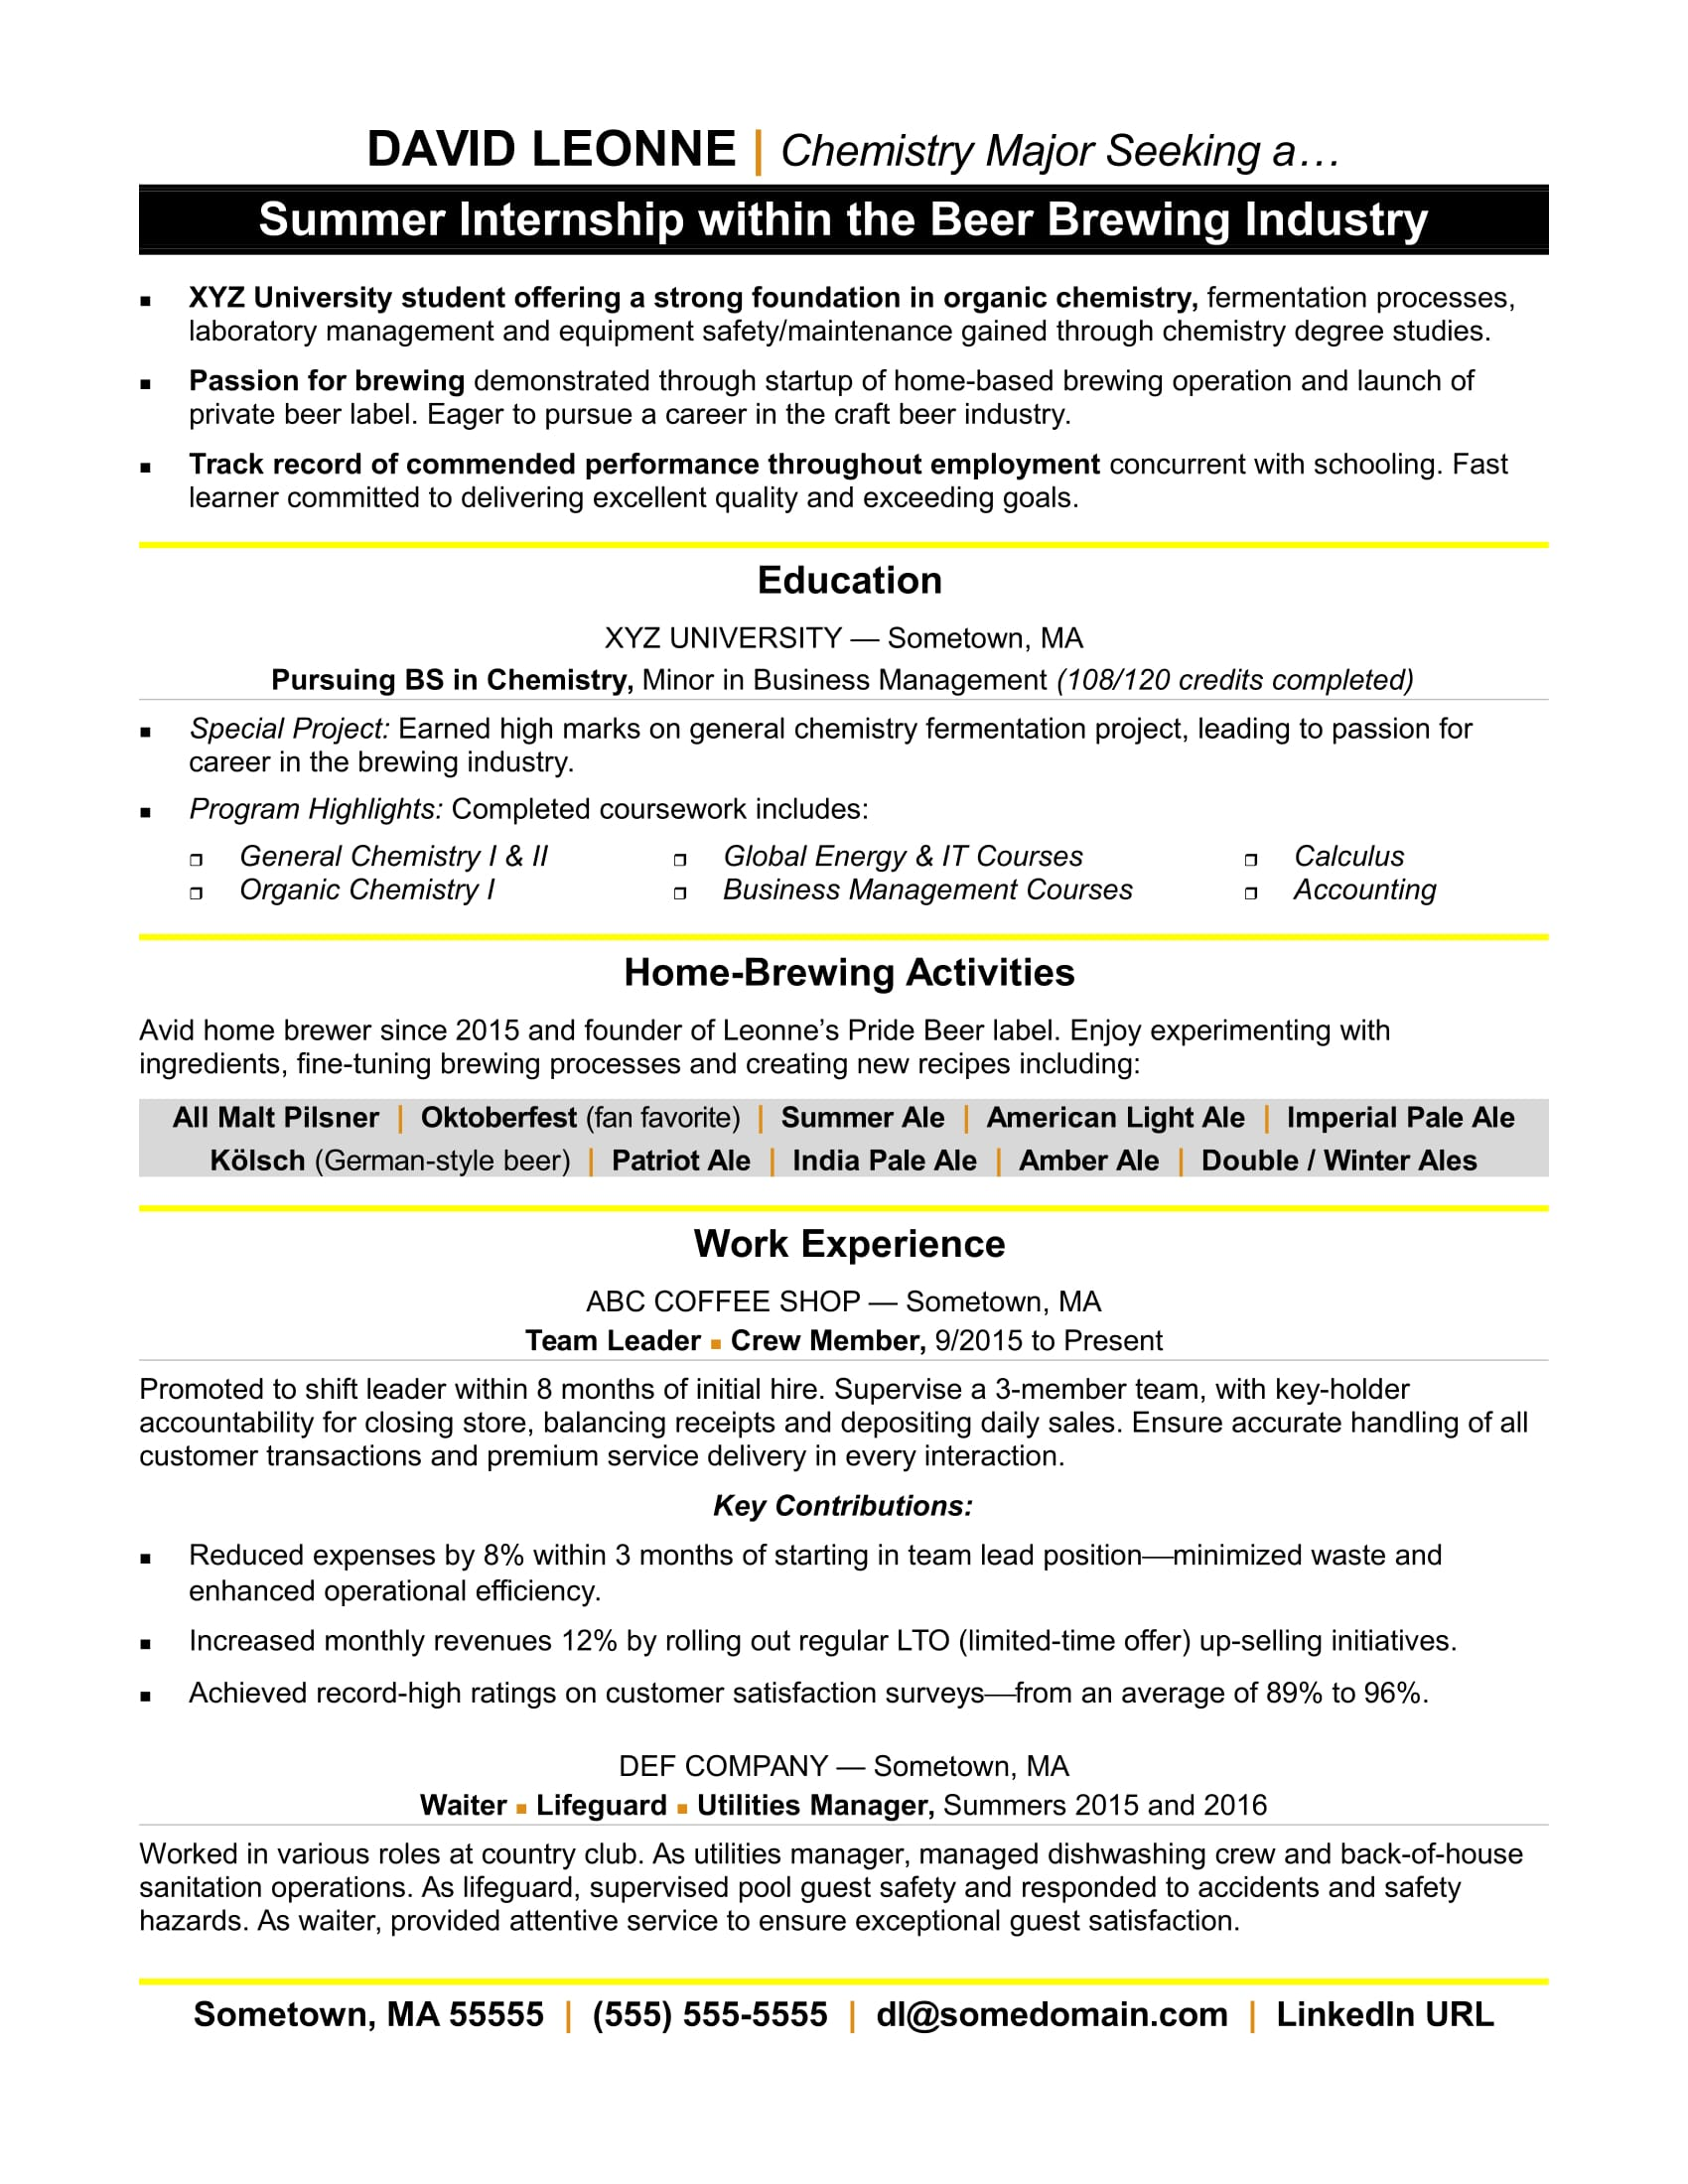 resume for internship monster professional summary tips strong medical billing objective Resume Professional Summary Resume For Internship